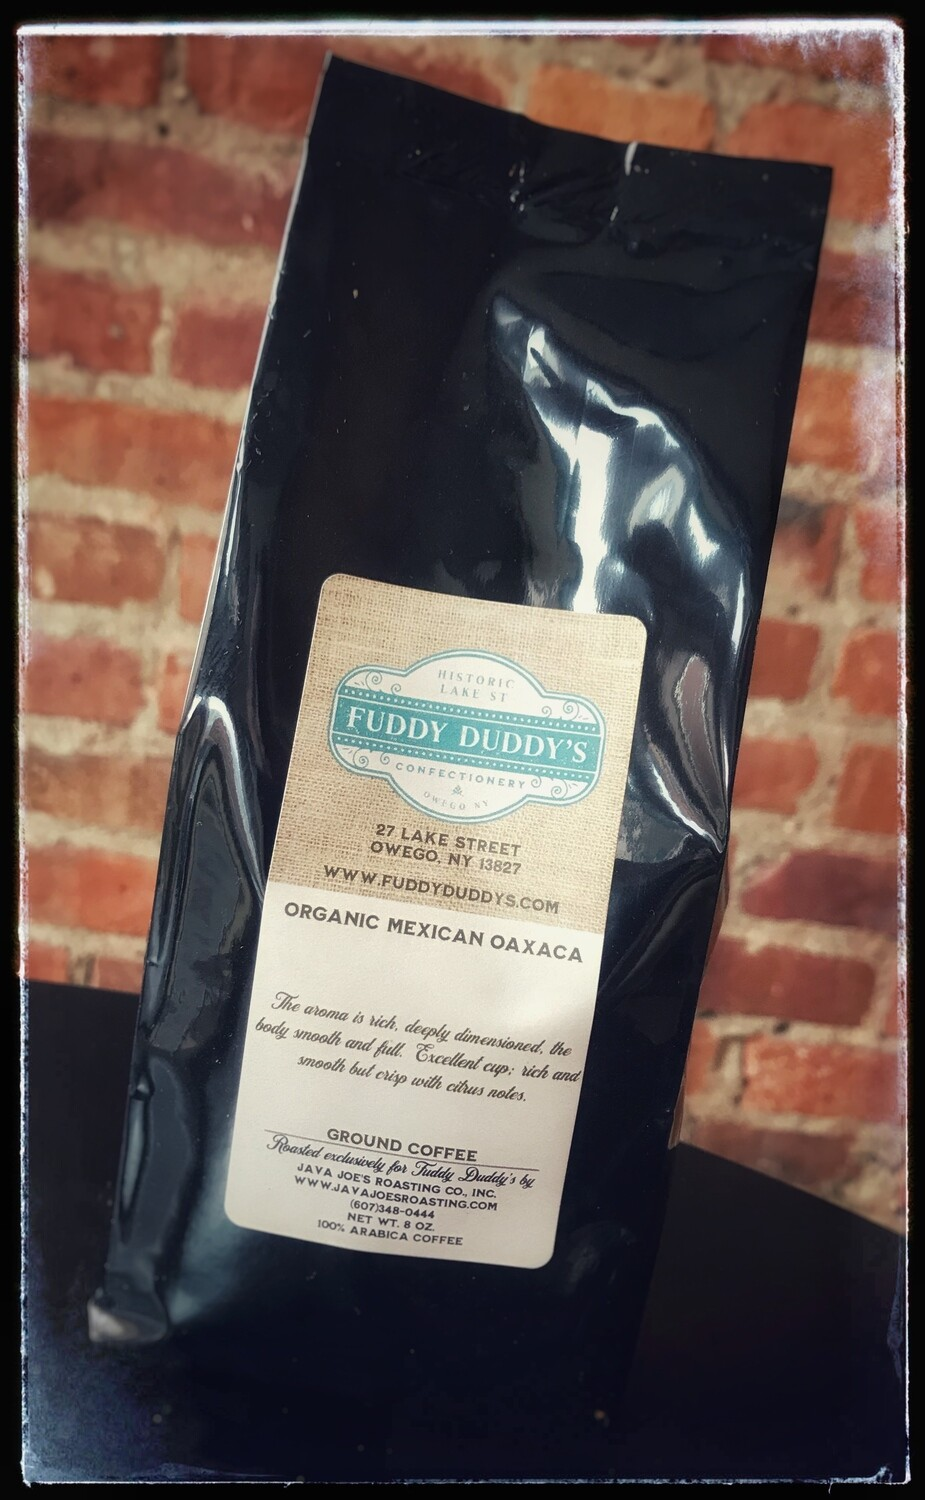 Fuddy Duddy's Organic Mexican Oaxaca Ground Coffee